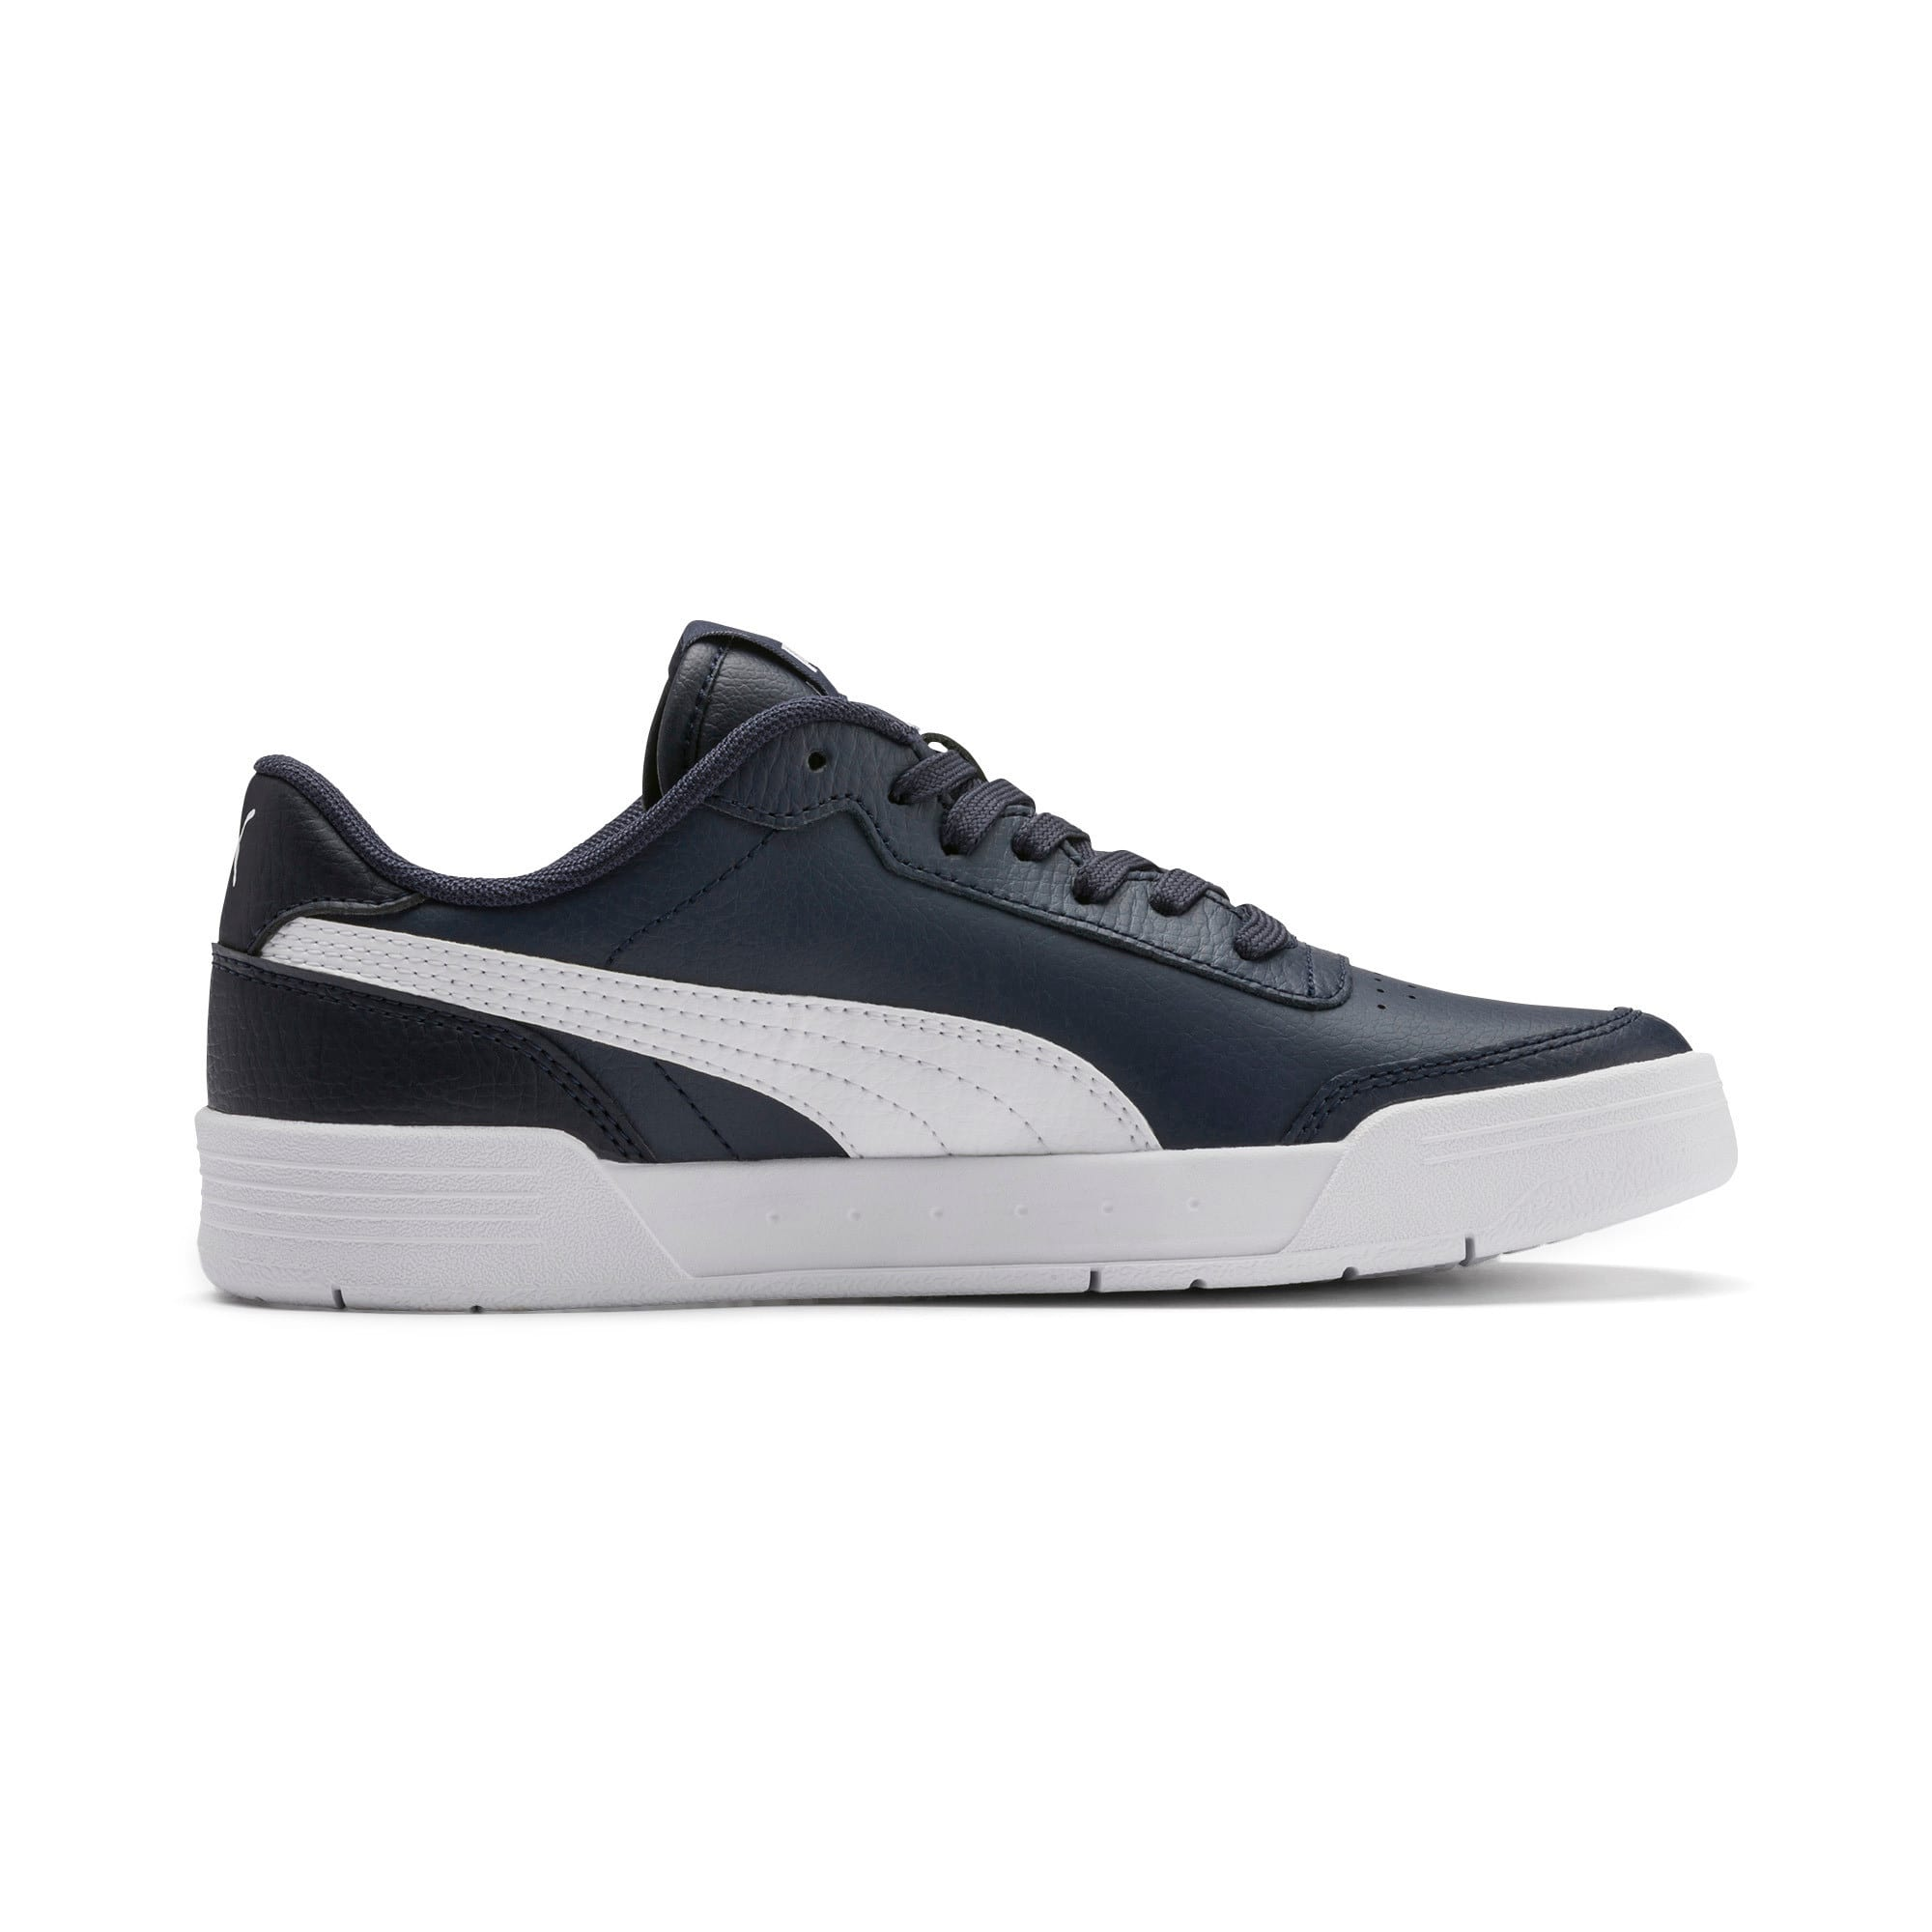 Thumbnail 5 of Caracal Youth Trainers, Peacoat-P. White-Puma Silver, medium-IND